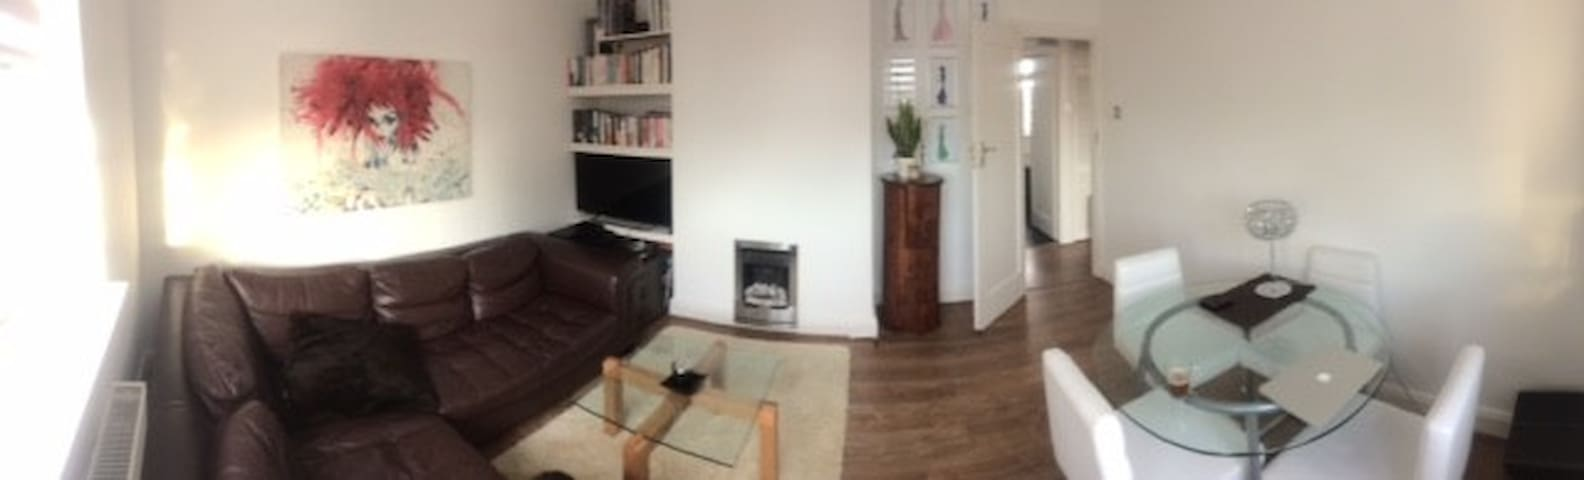 Spacious room in modern apartment - Twickenham - Pis